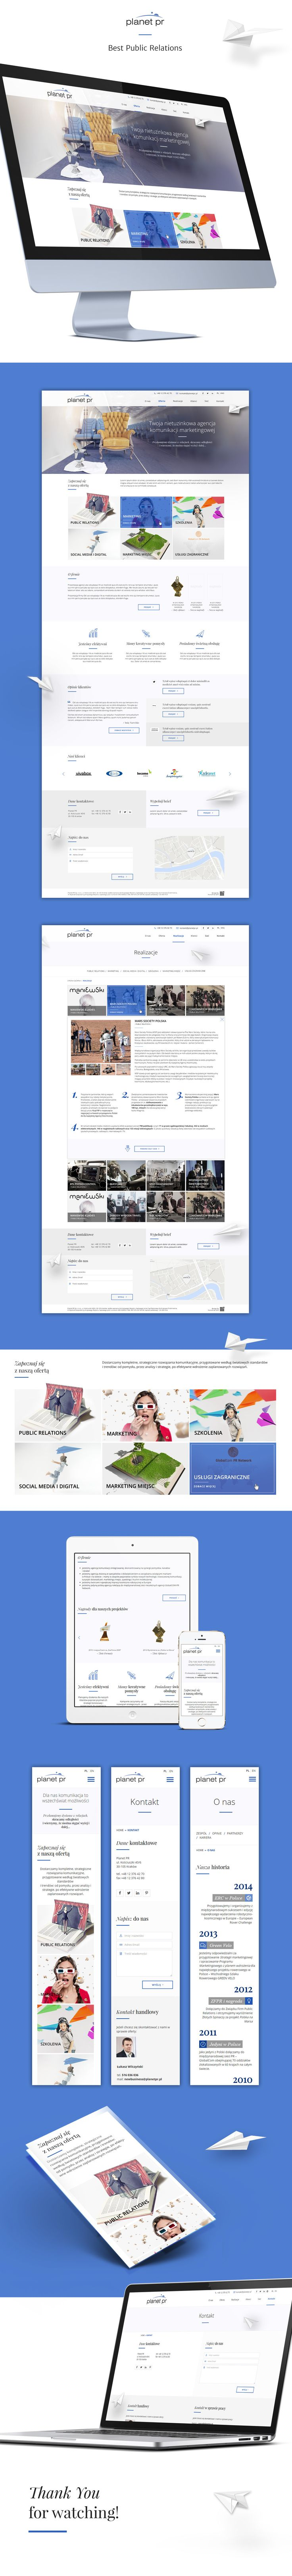 Web for the public relations agency that deals with integrated communication, focused on the synergy of ideas, channels and actions.